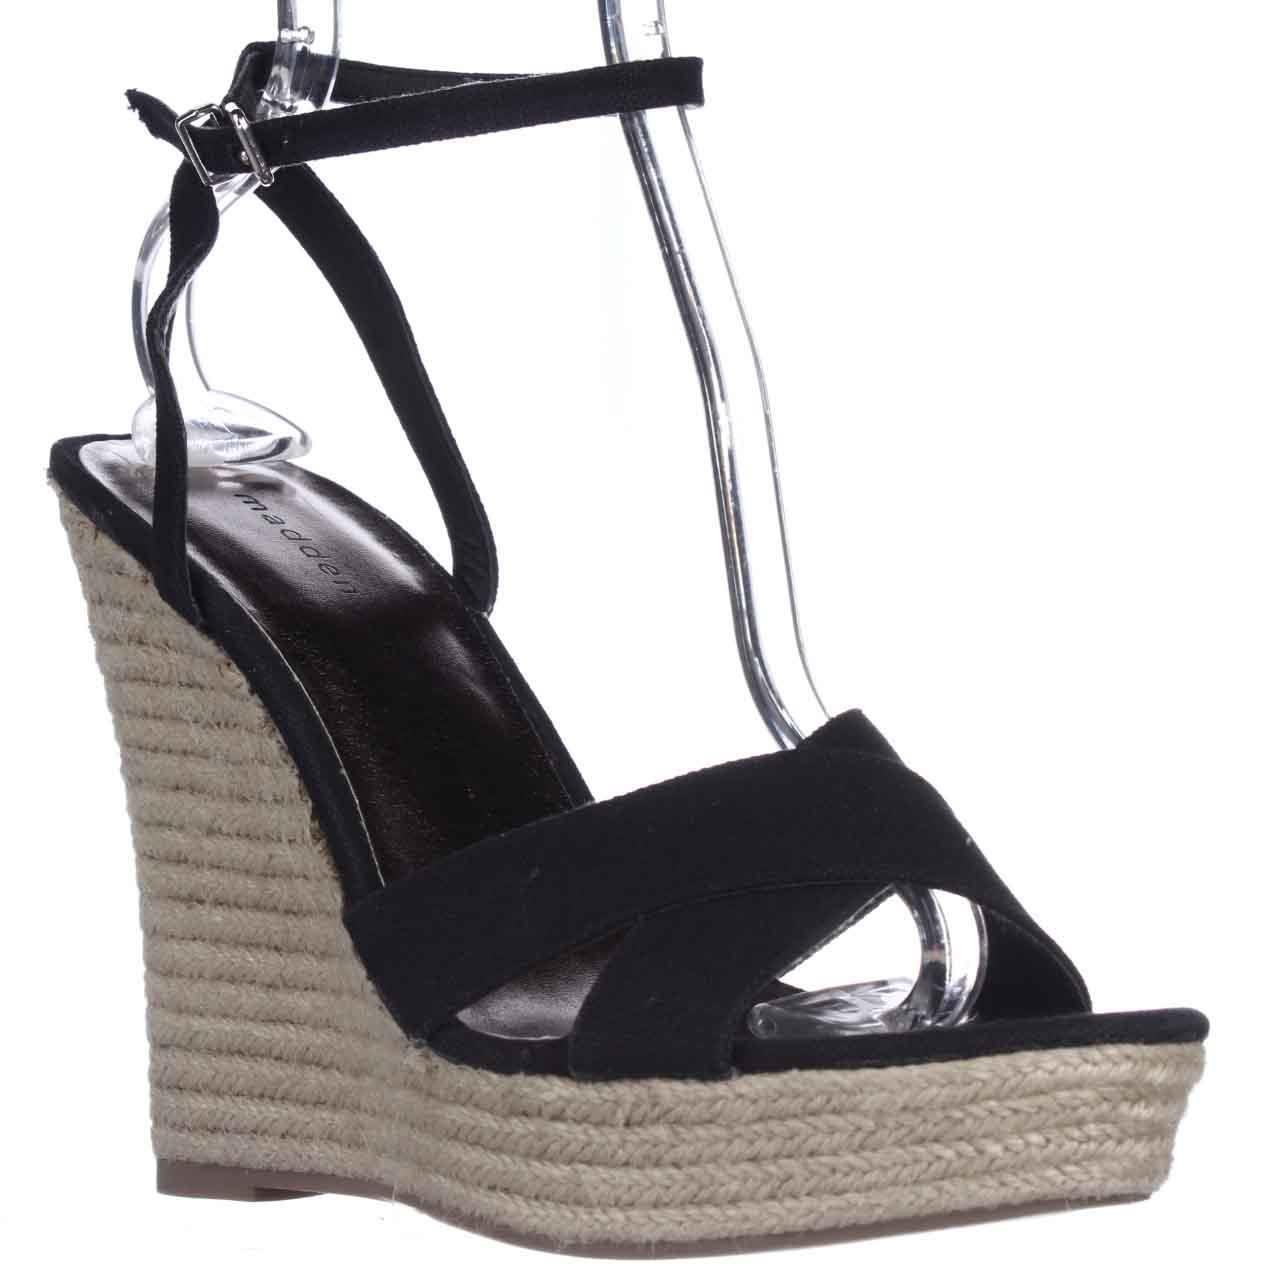 Womens madden girl Viicki Wedge Espadrille Sandals - Black